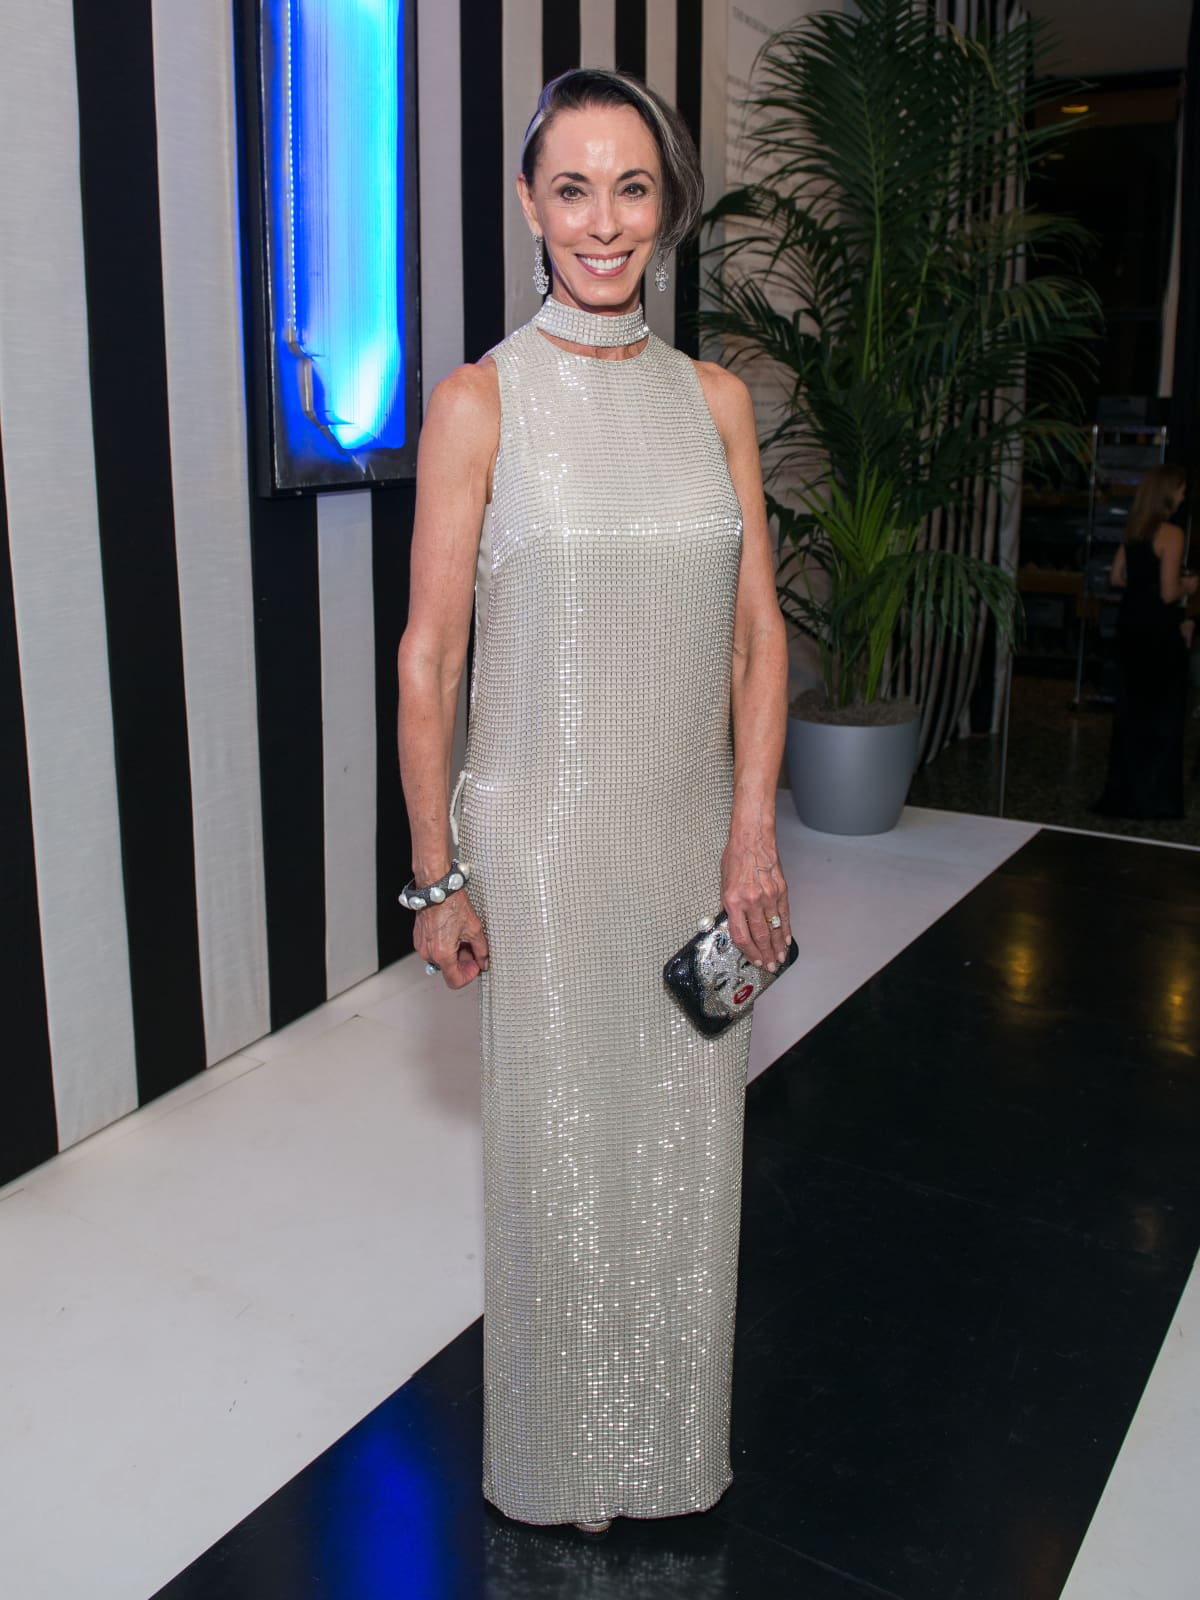 News, Shelby, MFAH gala gowns, Oct. 2015 Sue Smith in Tom Ford